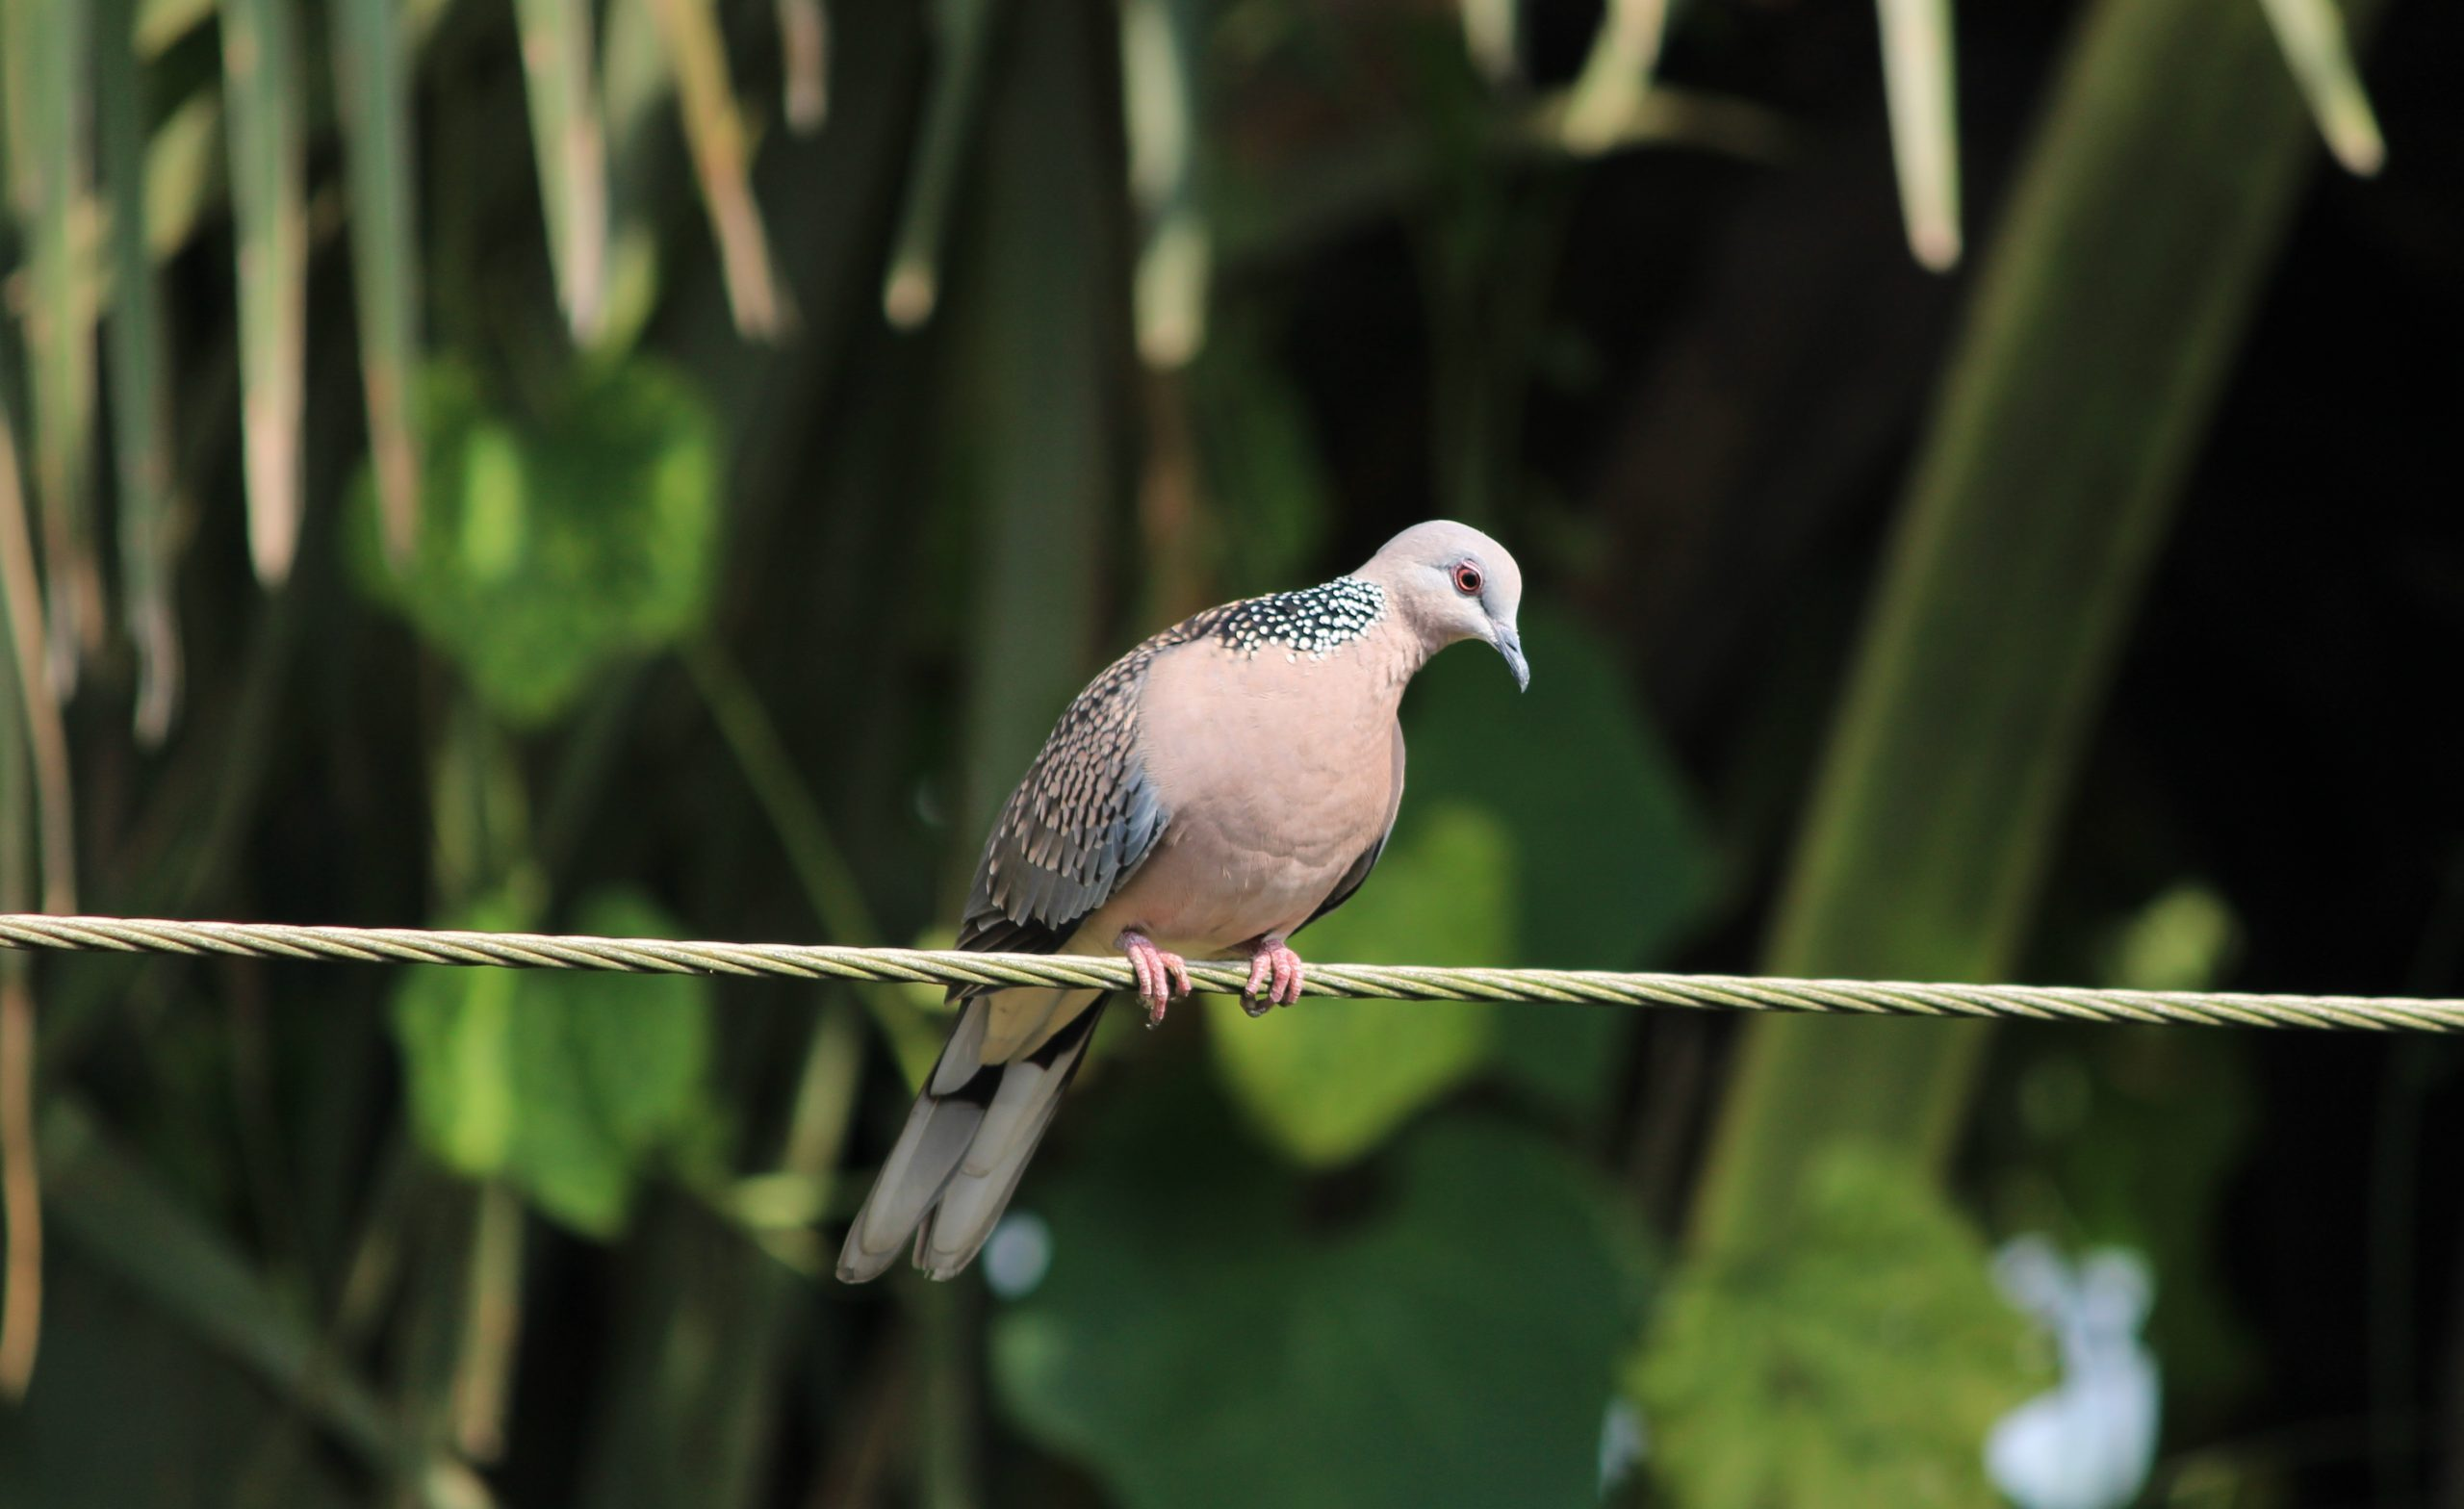 A lovely bird alighted on the rope line